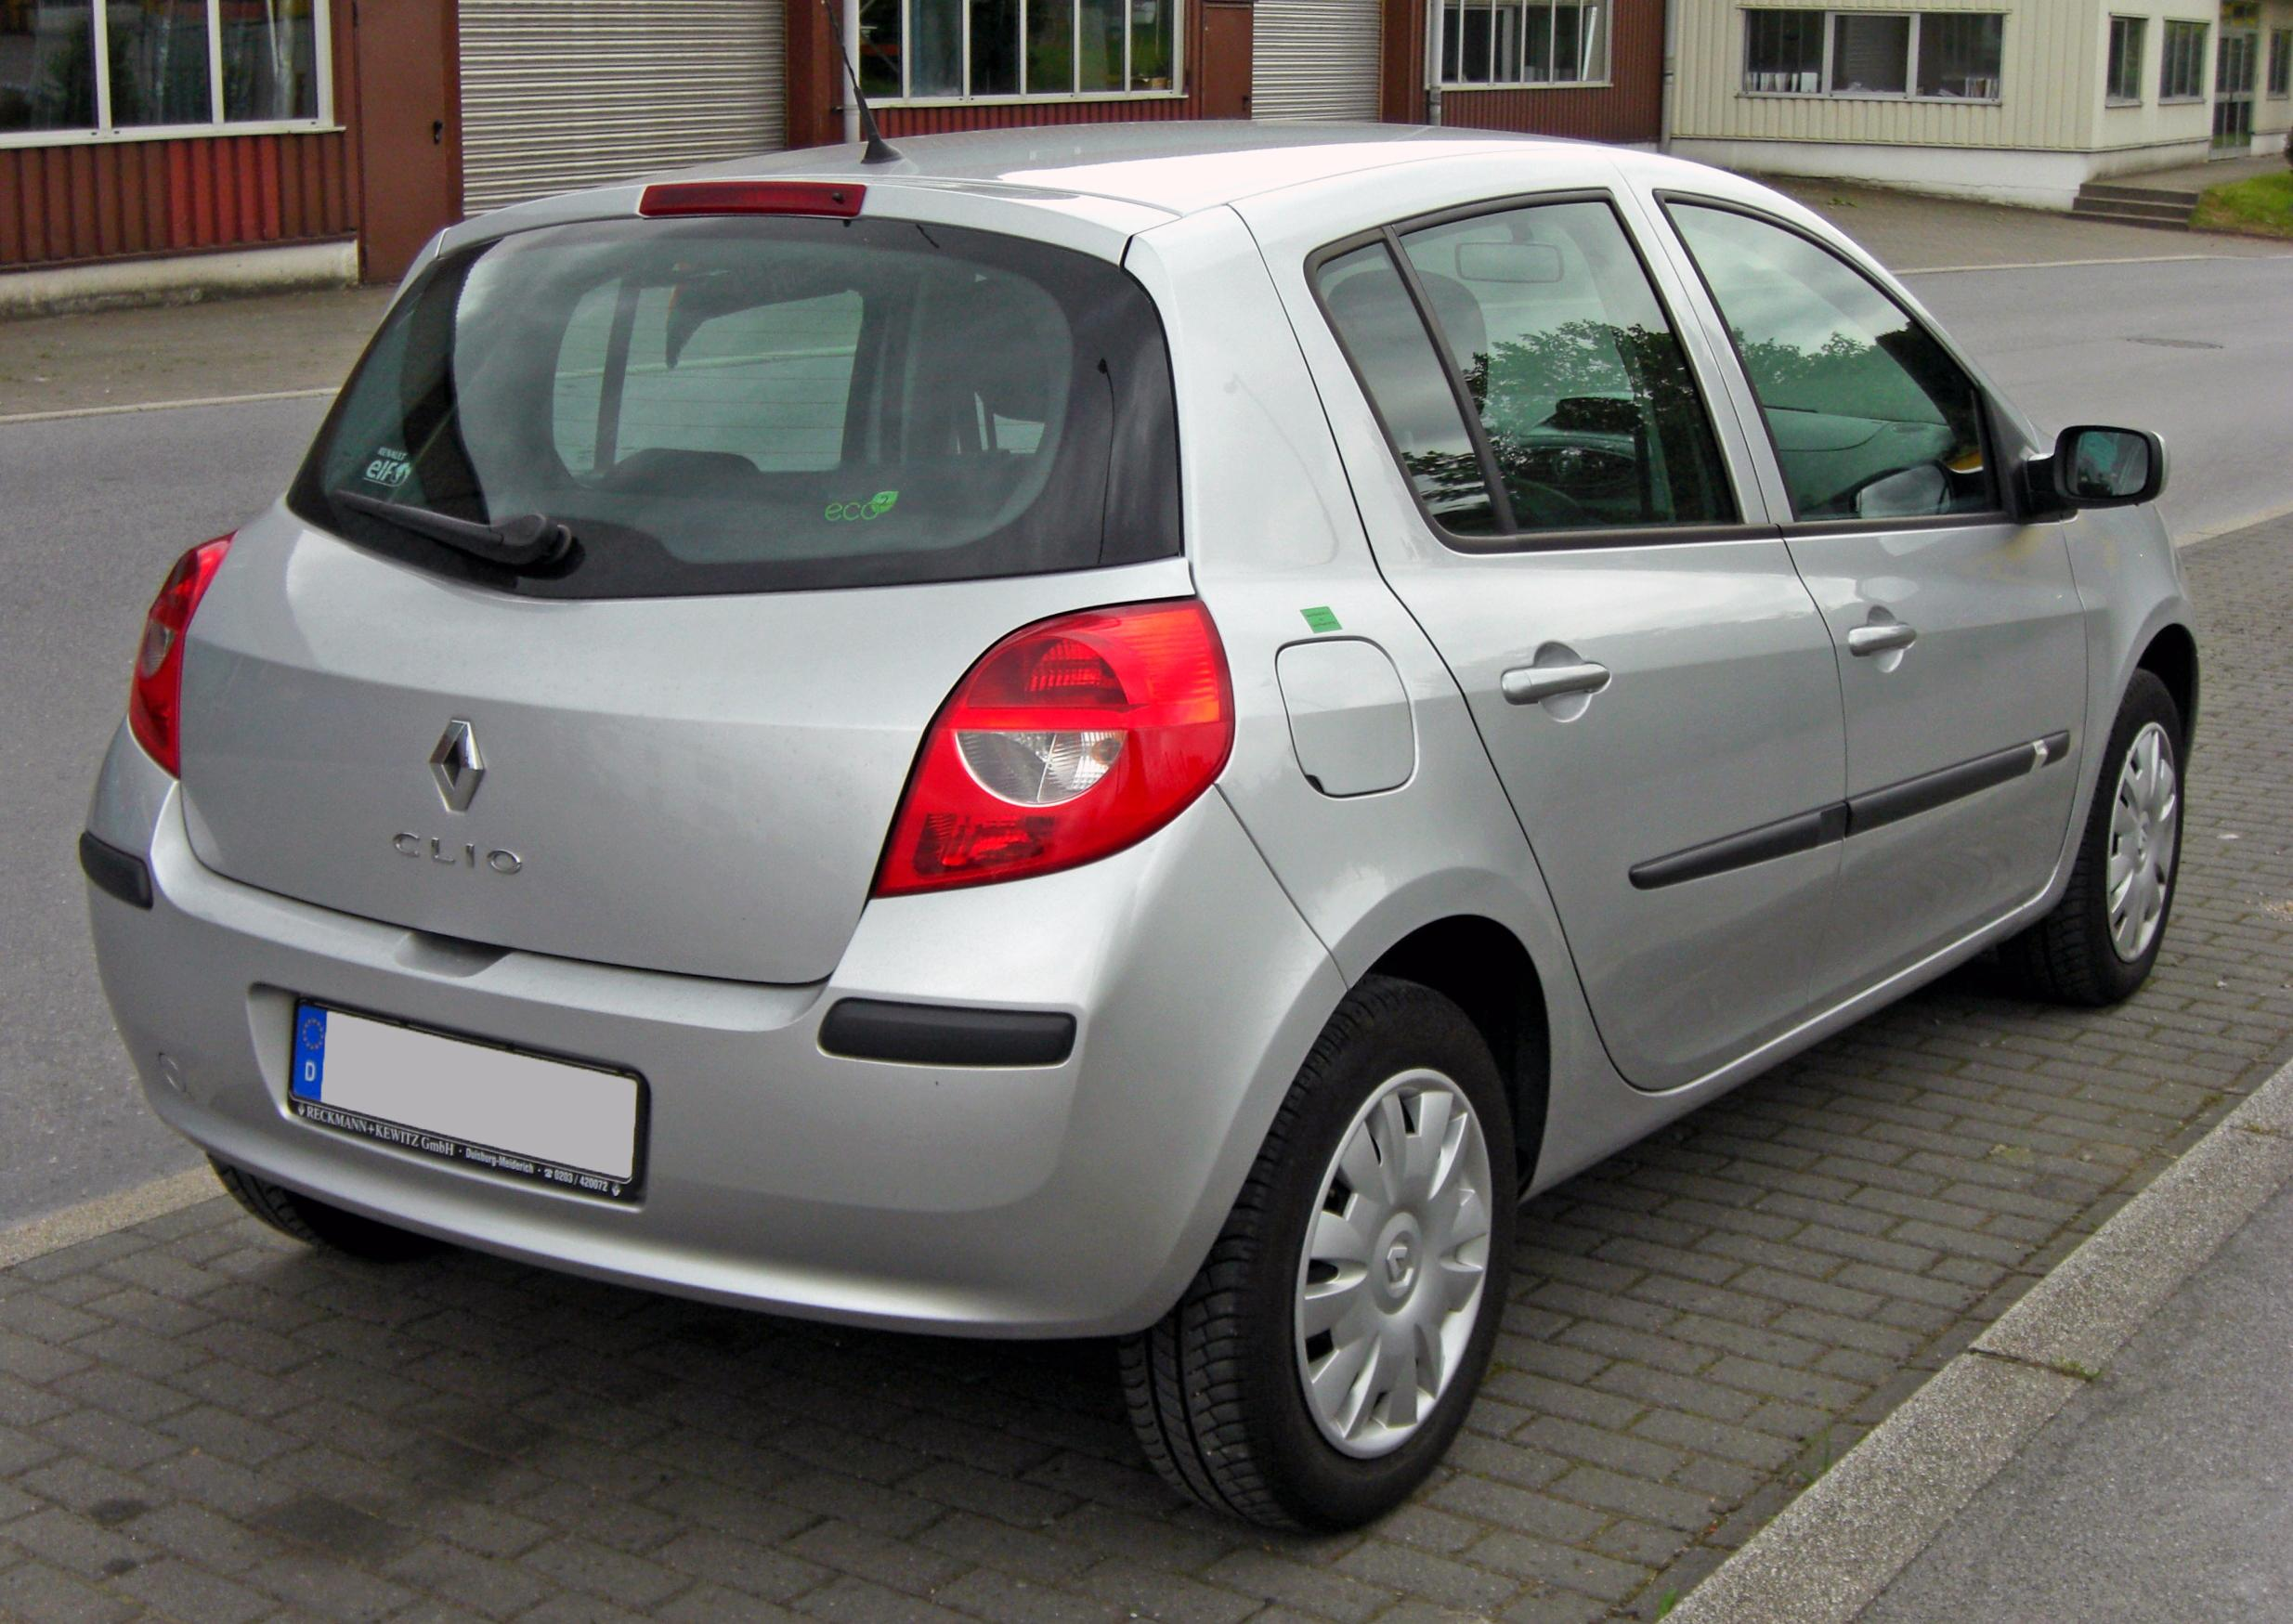 file renault clio iii 20090527 rear jpg wikimedia commons. Black Bedroom Furniture Sets. Home Design Ideas